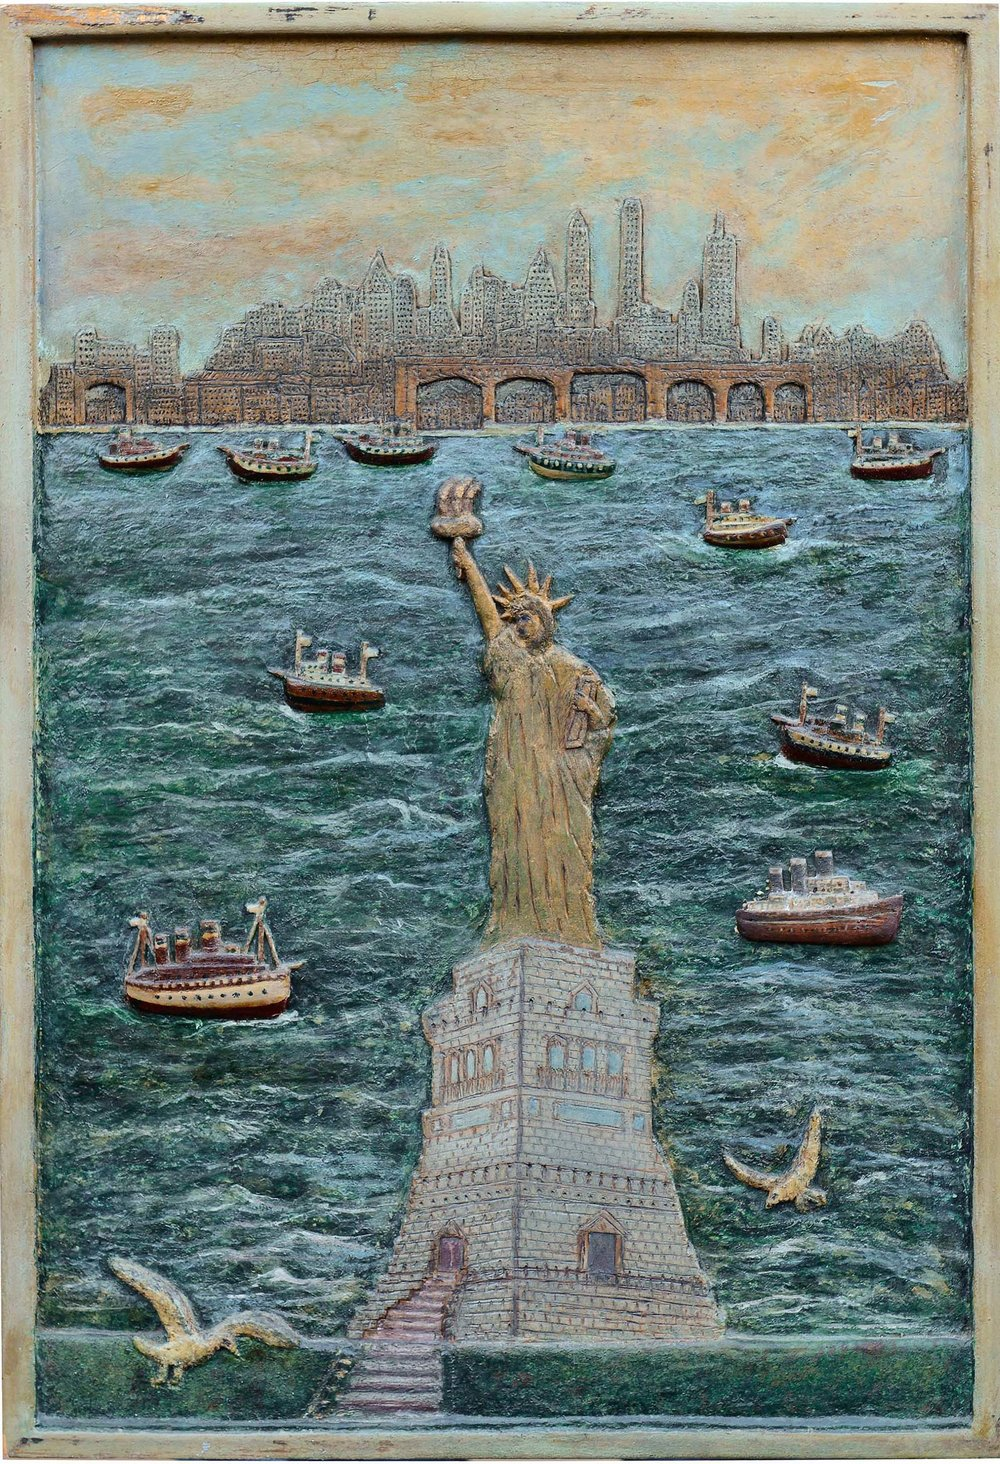 Harry Bloomindale,  Land of Liberty,  c. 1933, carved wood with original paint, 16h x 12w x 1d in.